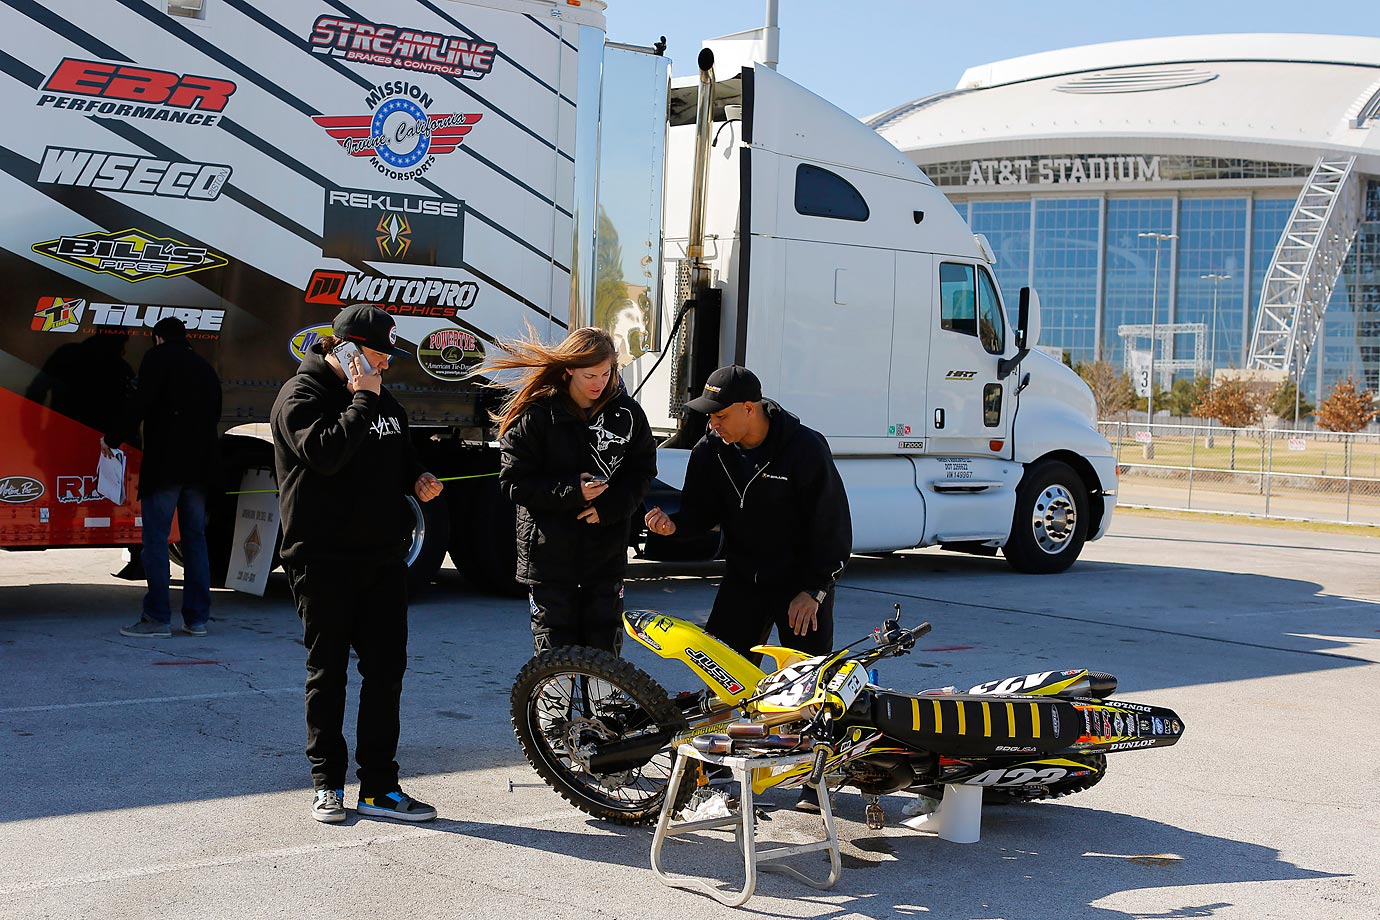 Golden talks with team personnel Frankie Garcia and Tim Slayton as they work on her bike prior to race.